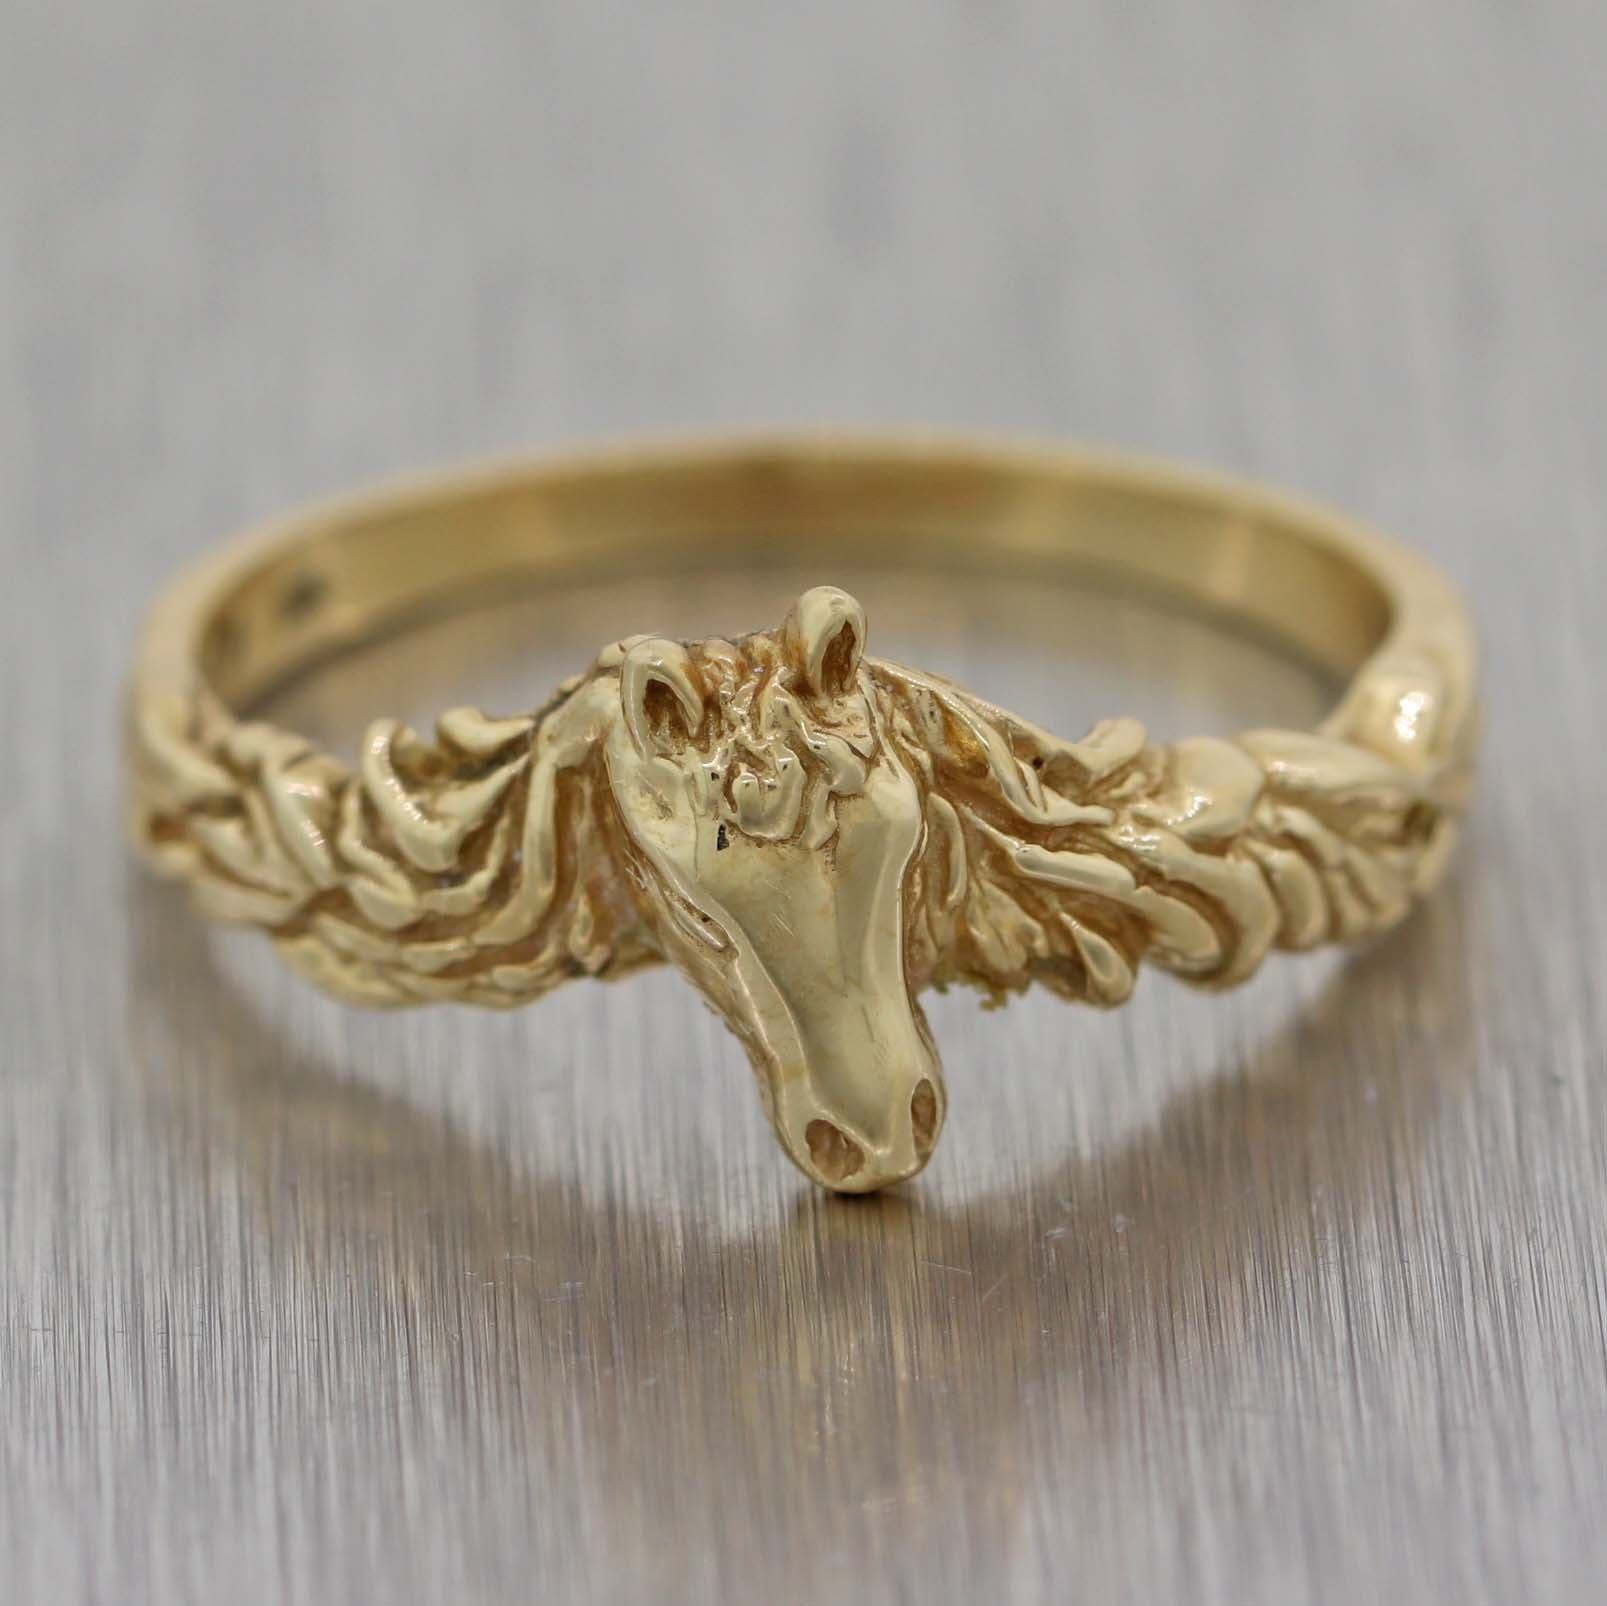 63d4f9fe48352 Vintage KABANA Solid 14k Yellow Gold Horse Band Ring